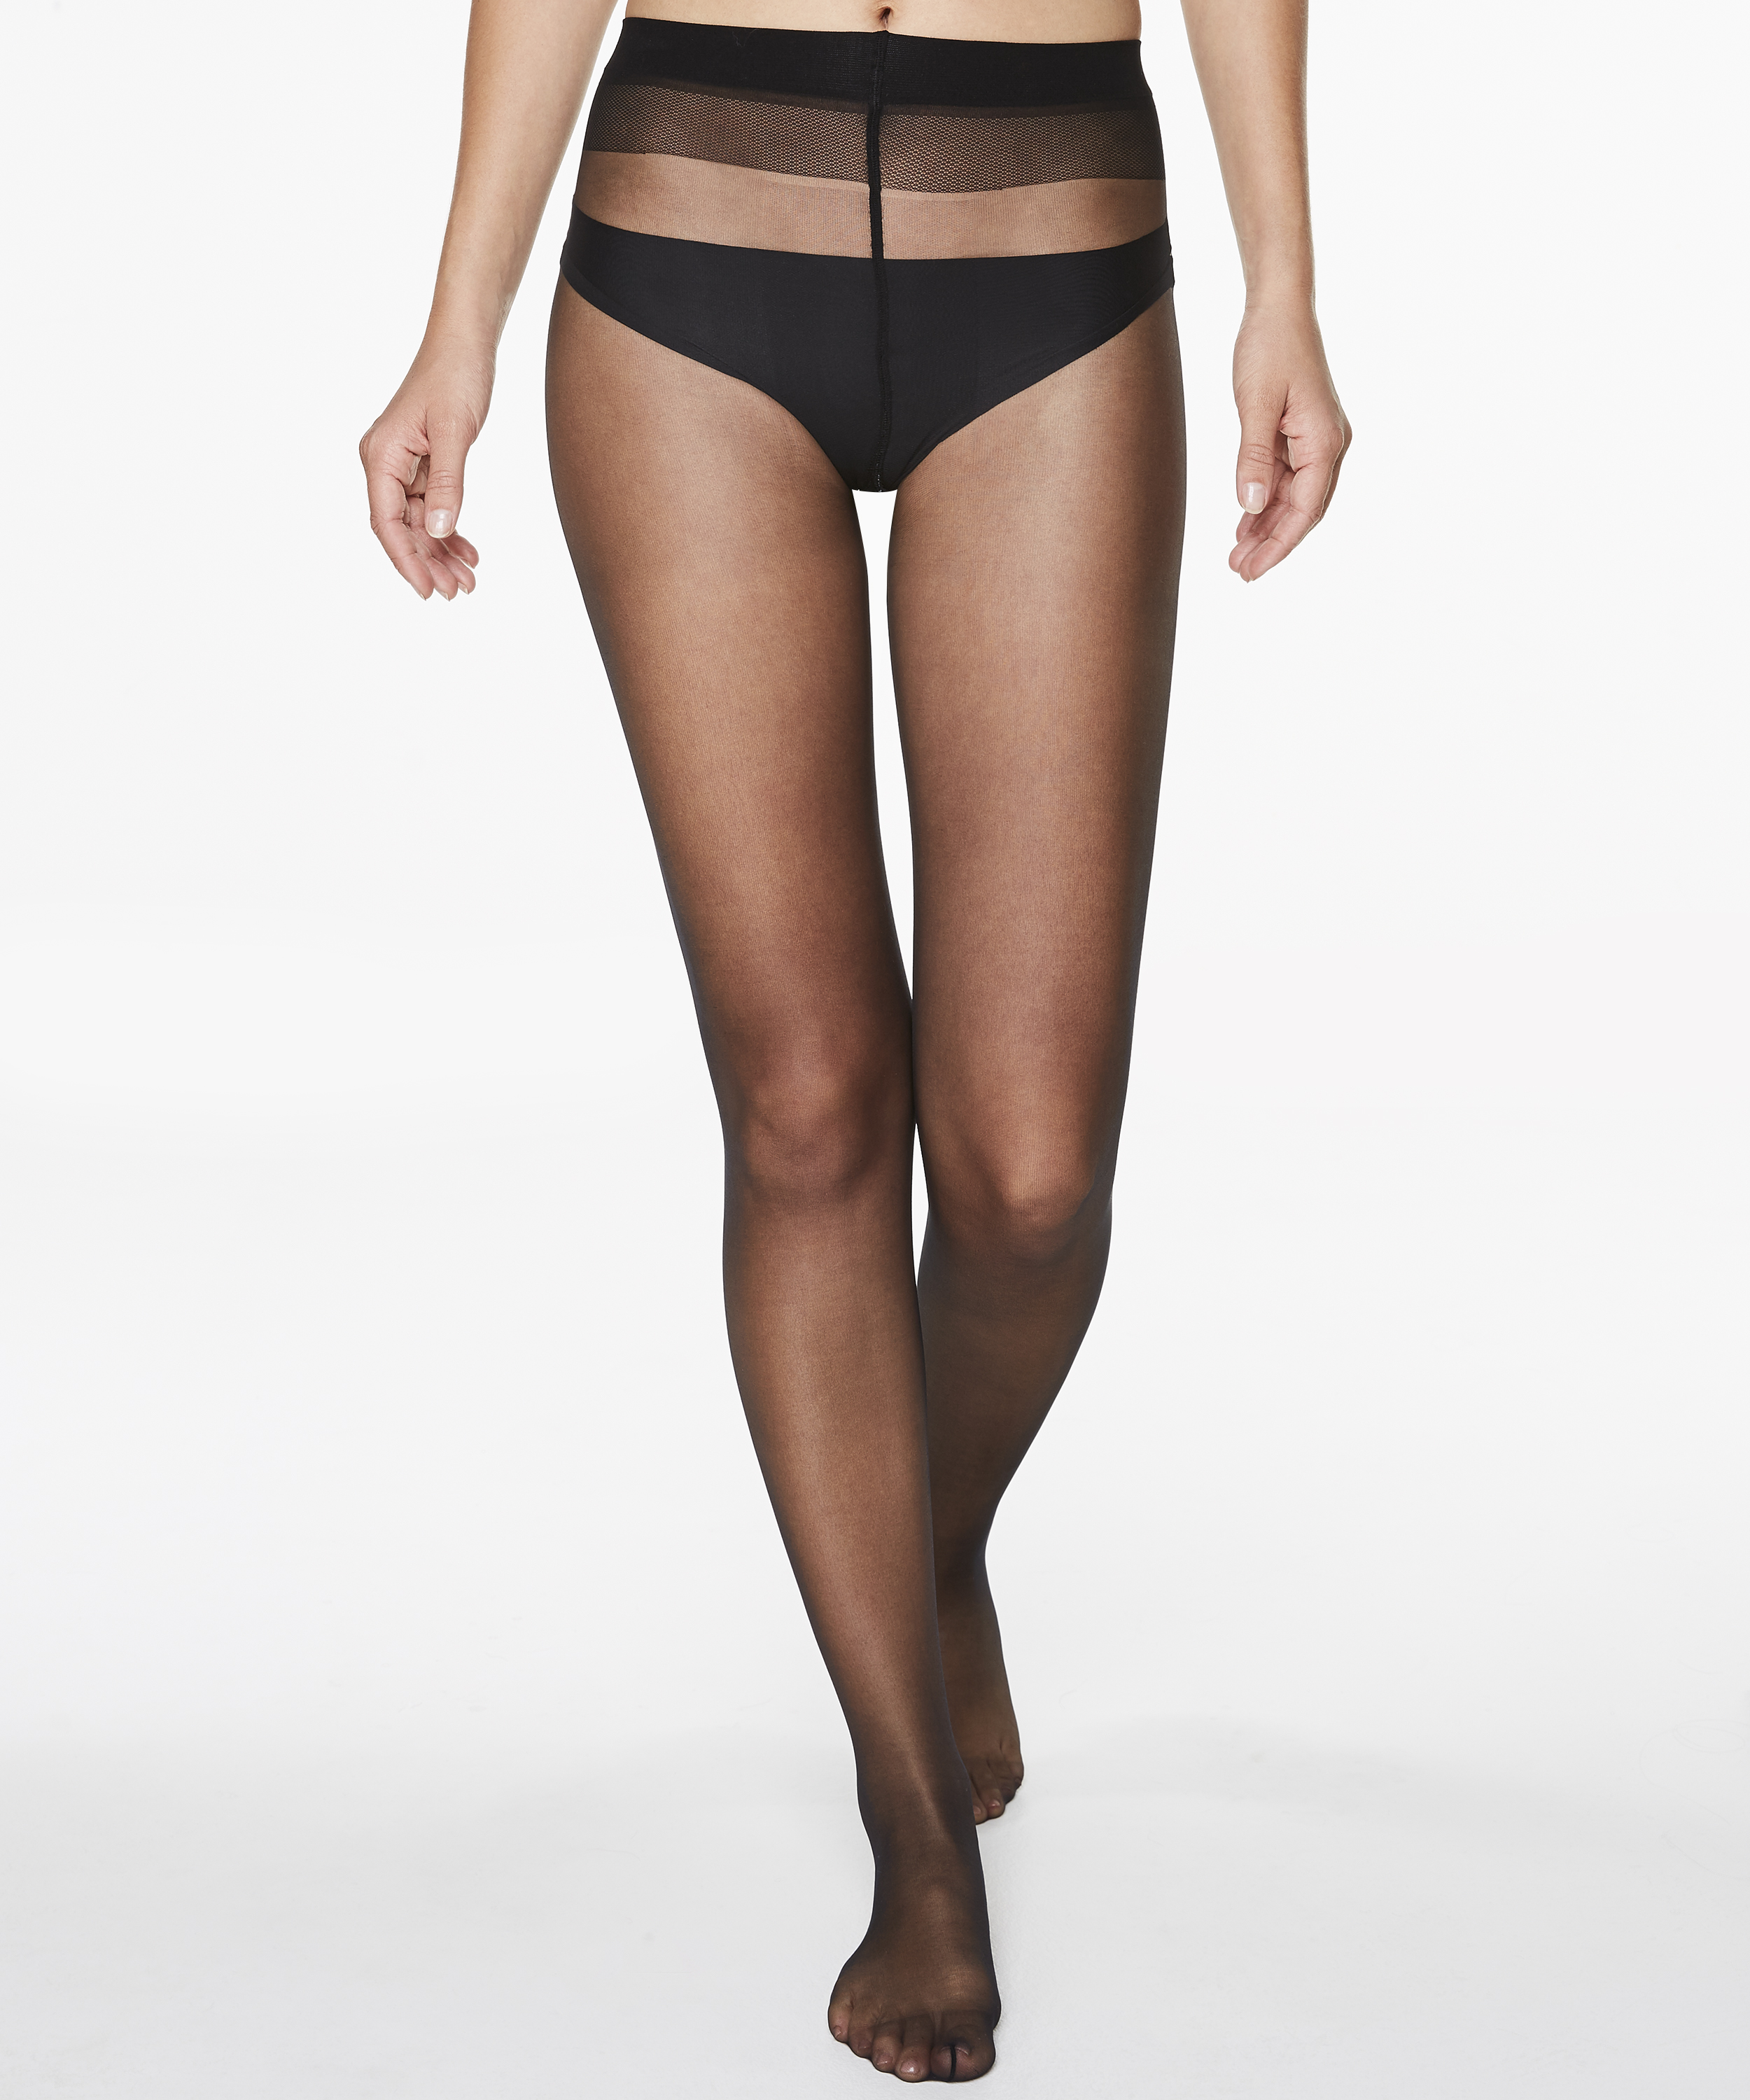 Panty 15 Denier Anti-ladder, Schwarz, main